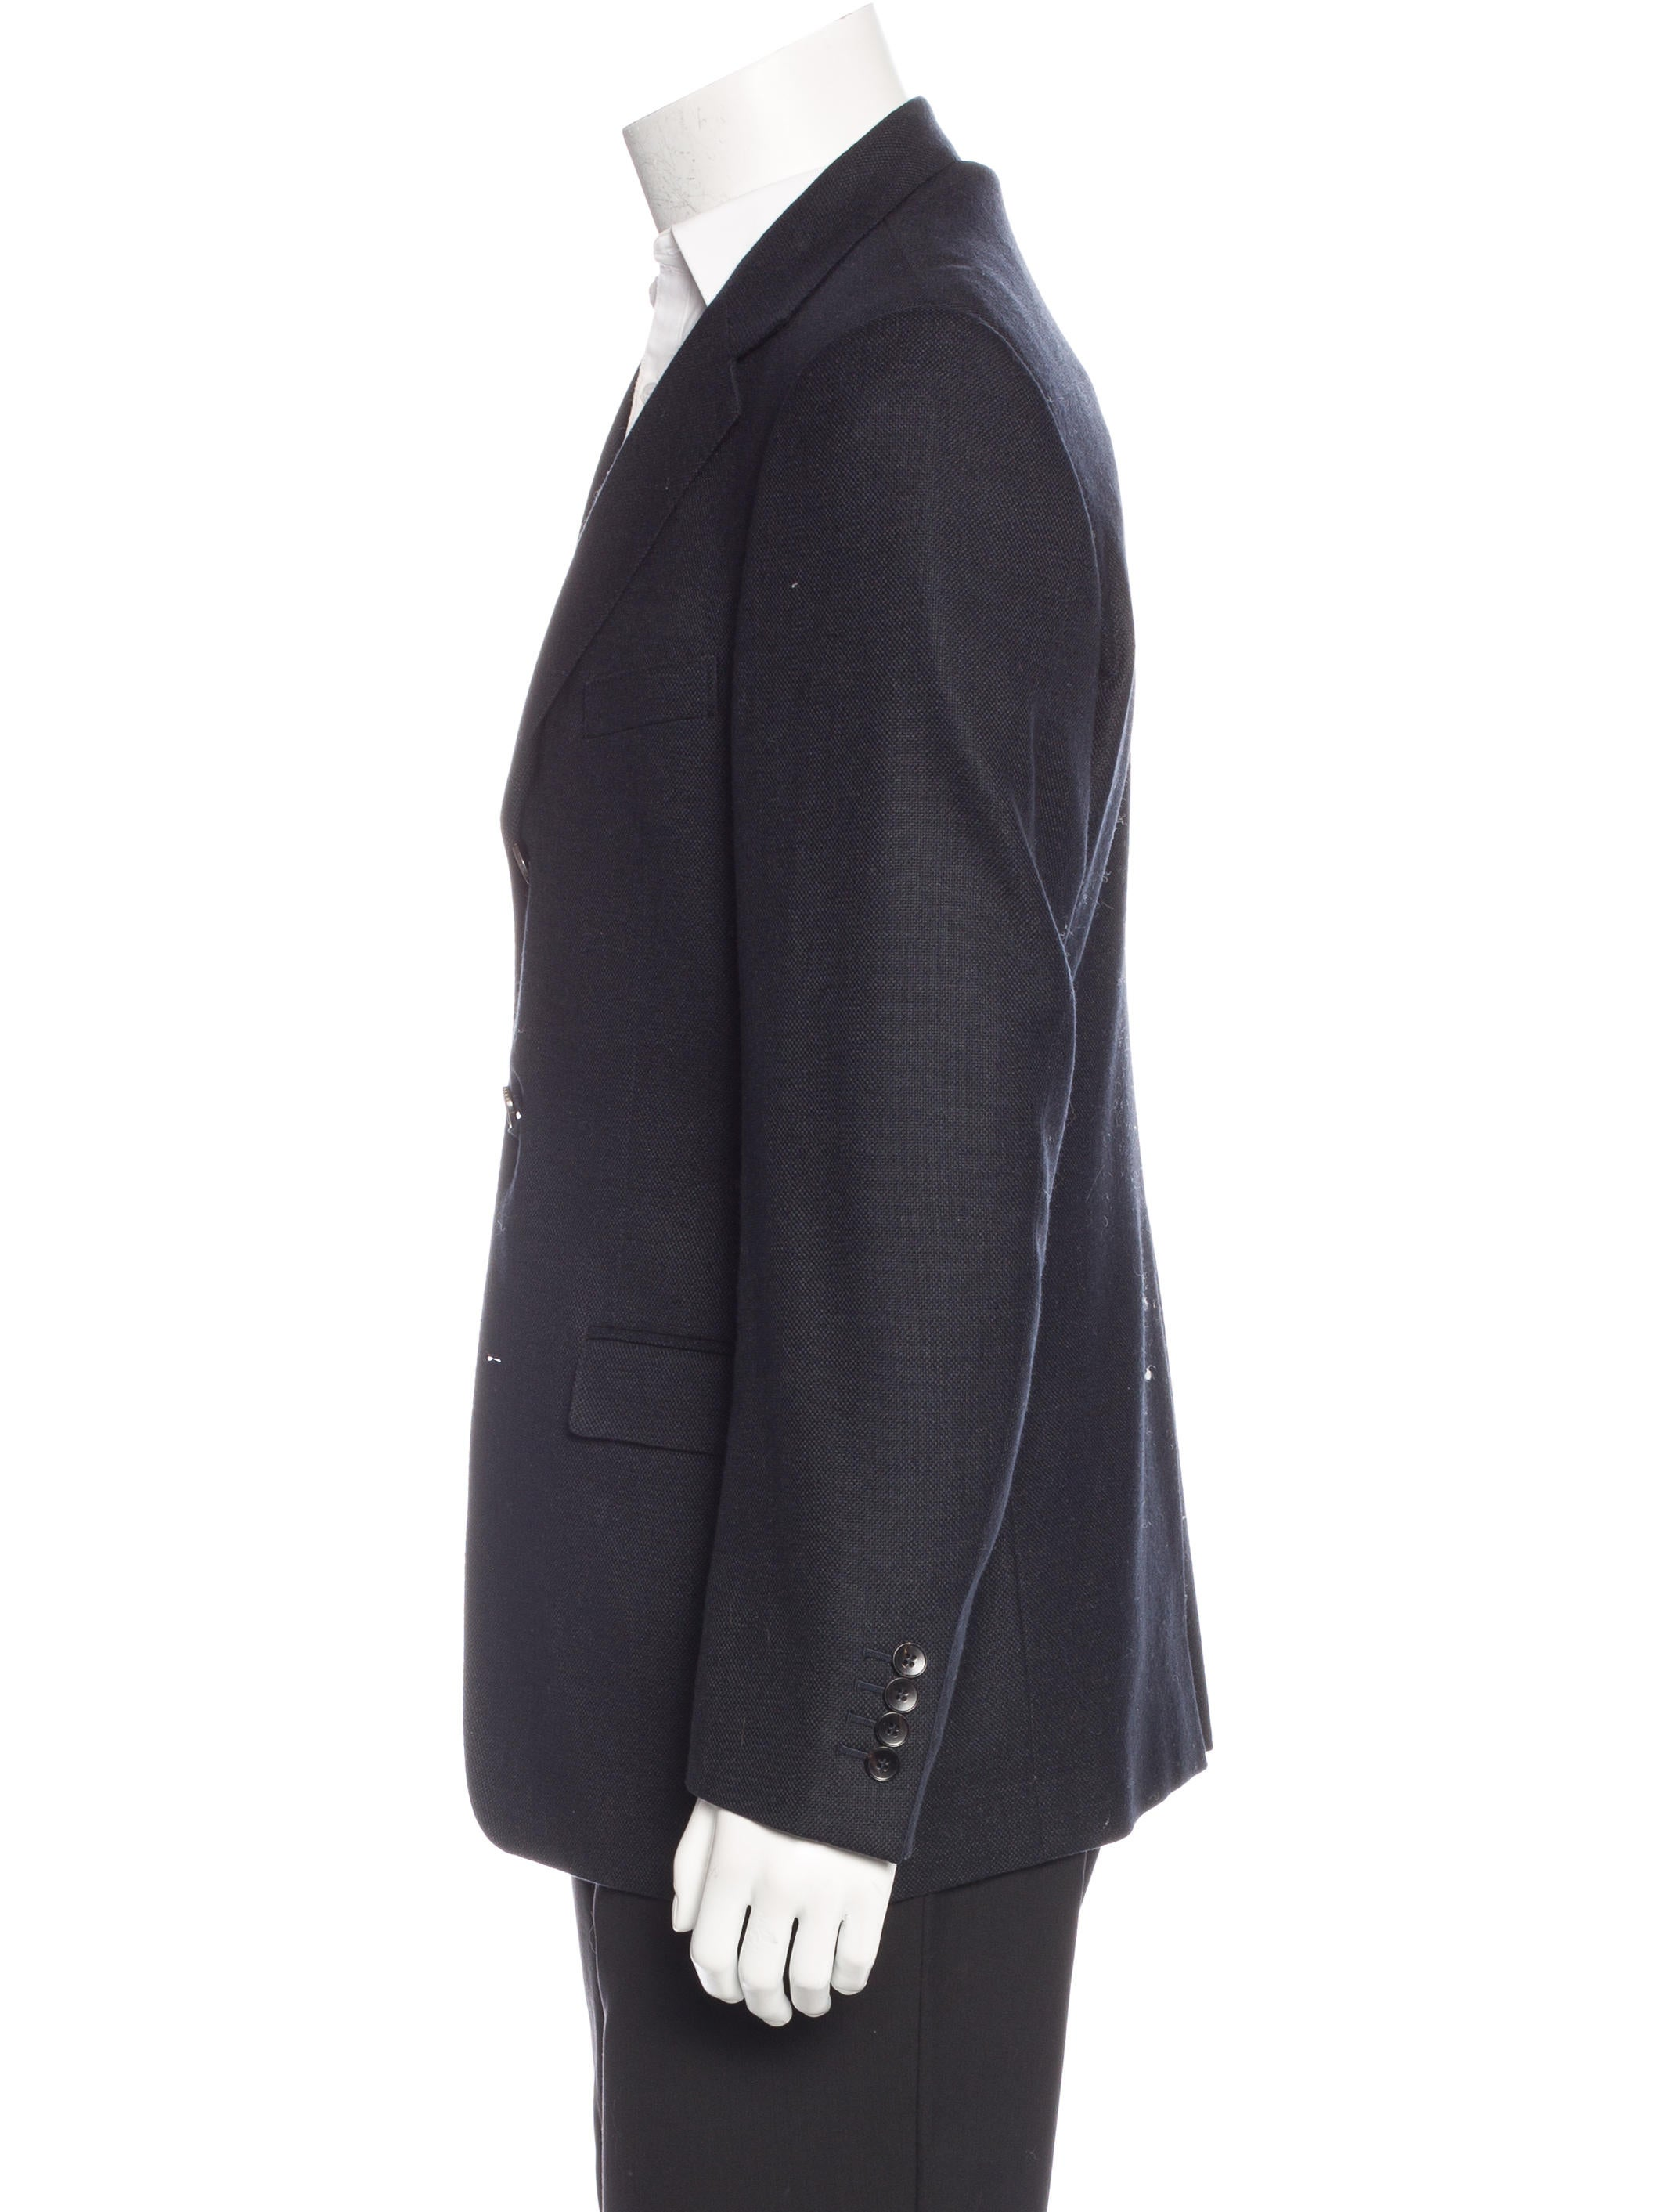 Gucci Wool-Blend Sport Coat - Clothing - GUC139902 | The RealReal